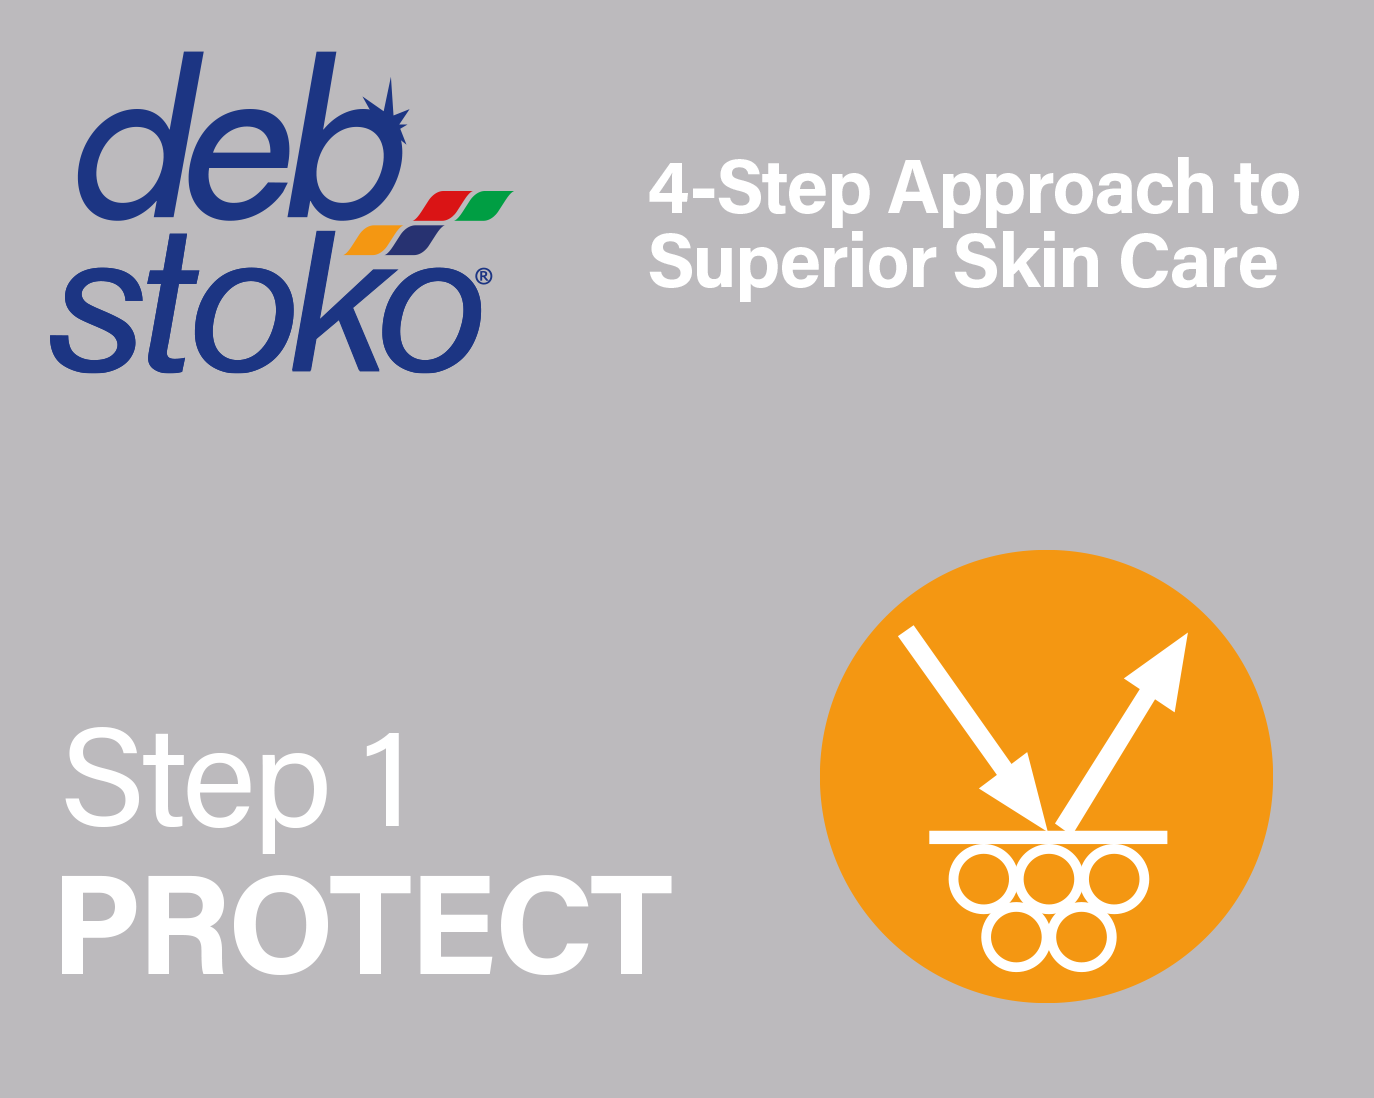 Step 1: Protect